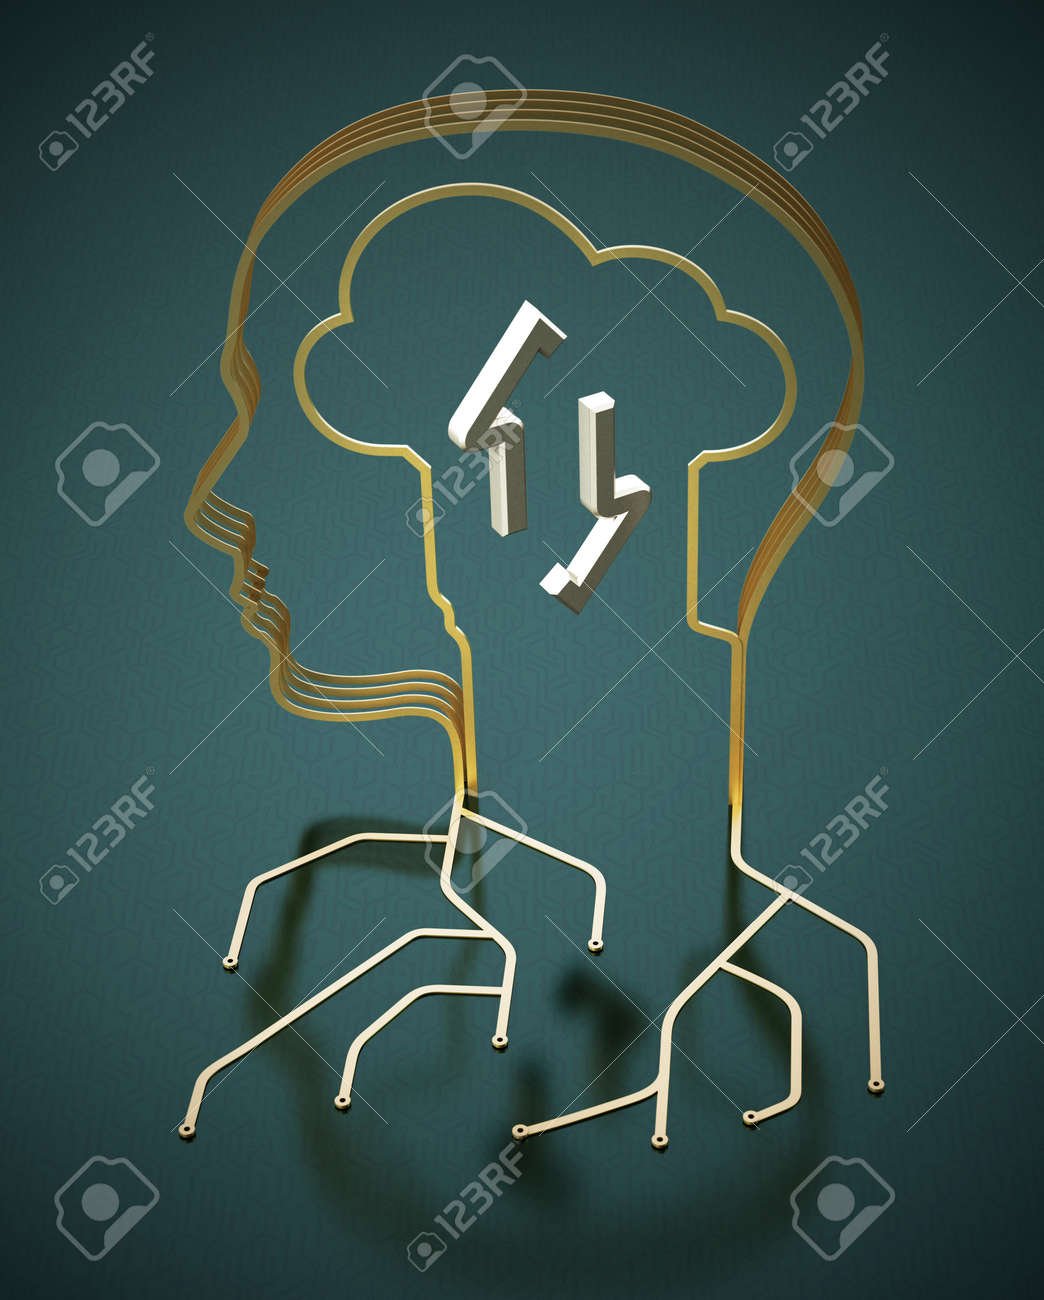 PCB circuit wires forming a head shape. Human and machine interaction concept. 3D illustration. - 173154717